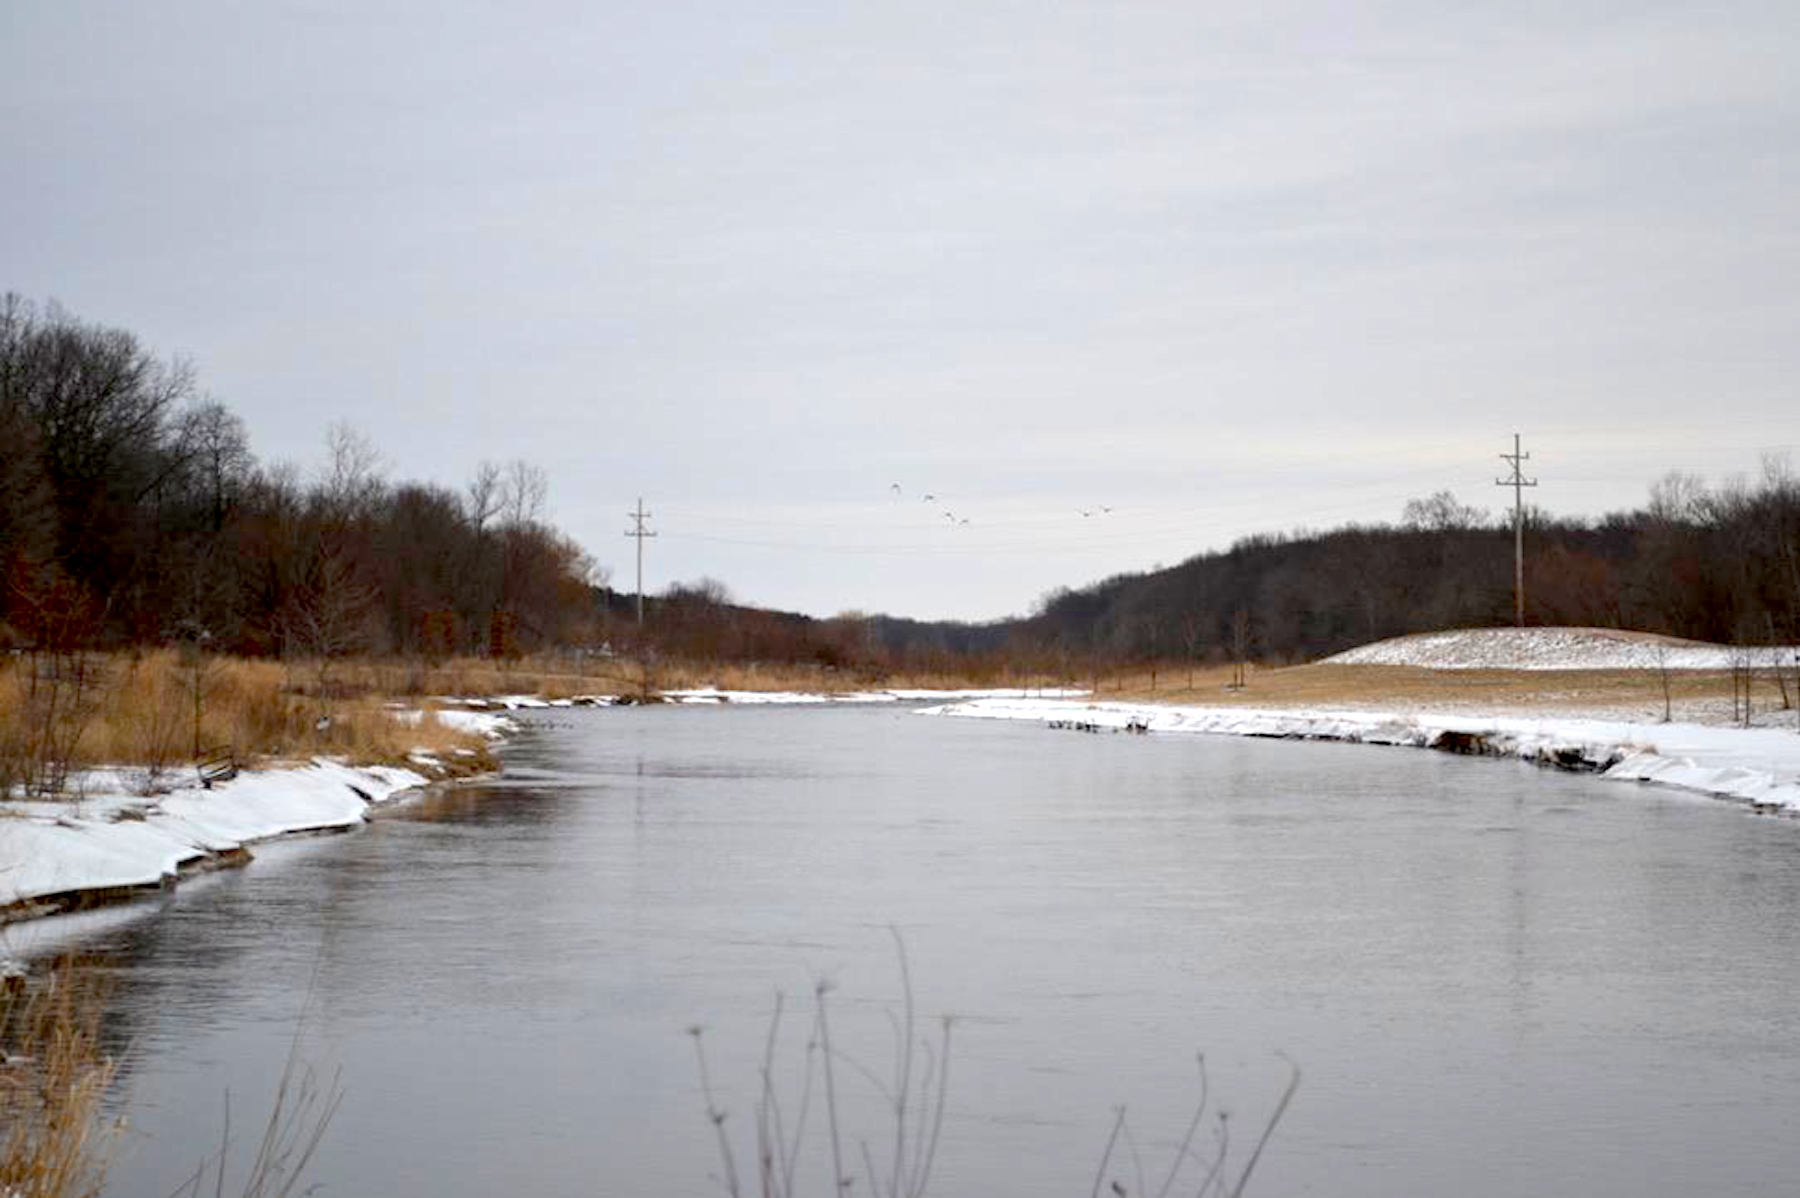 The Enduring Legacy of the 2010 Kalamazoo River Oil Spill